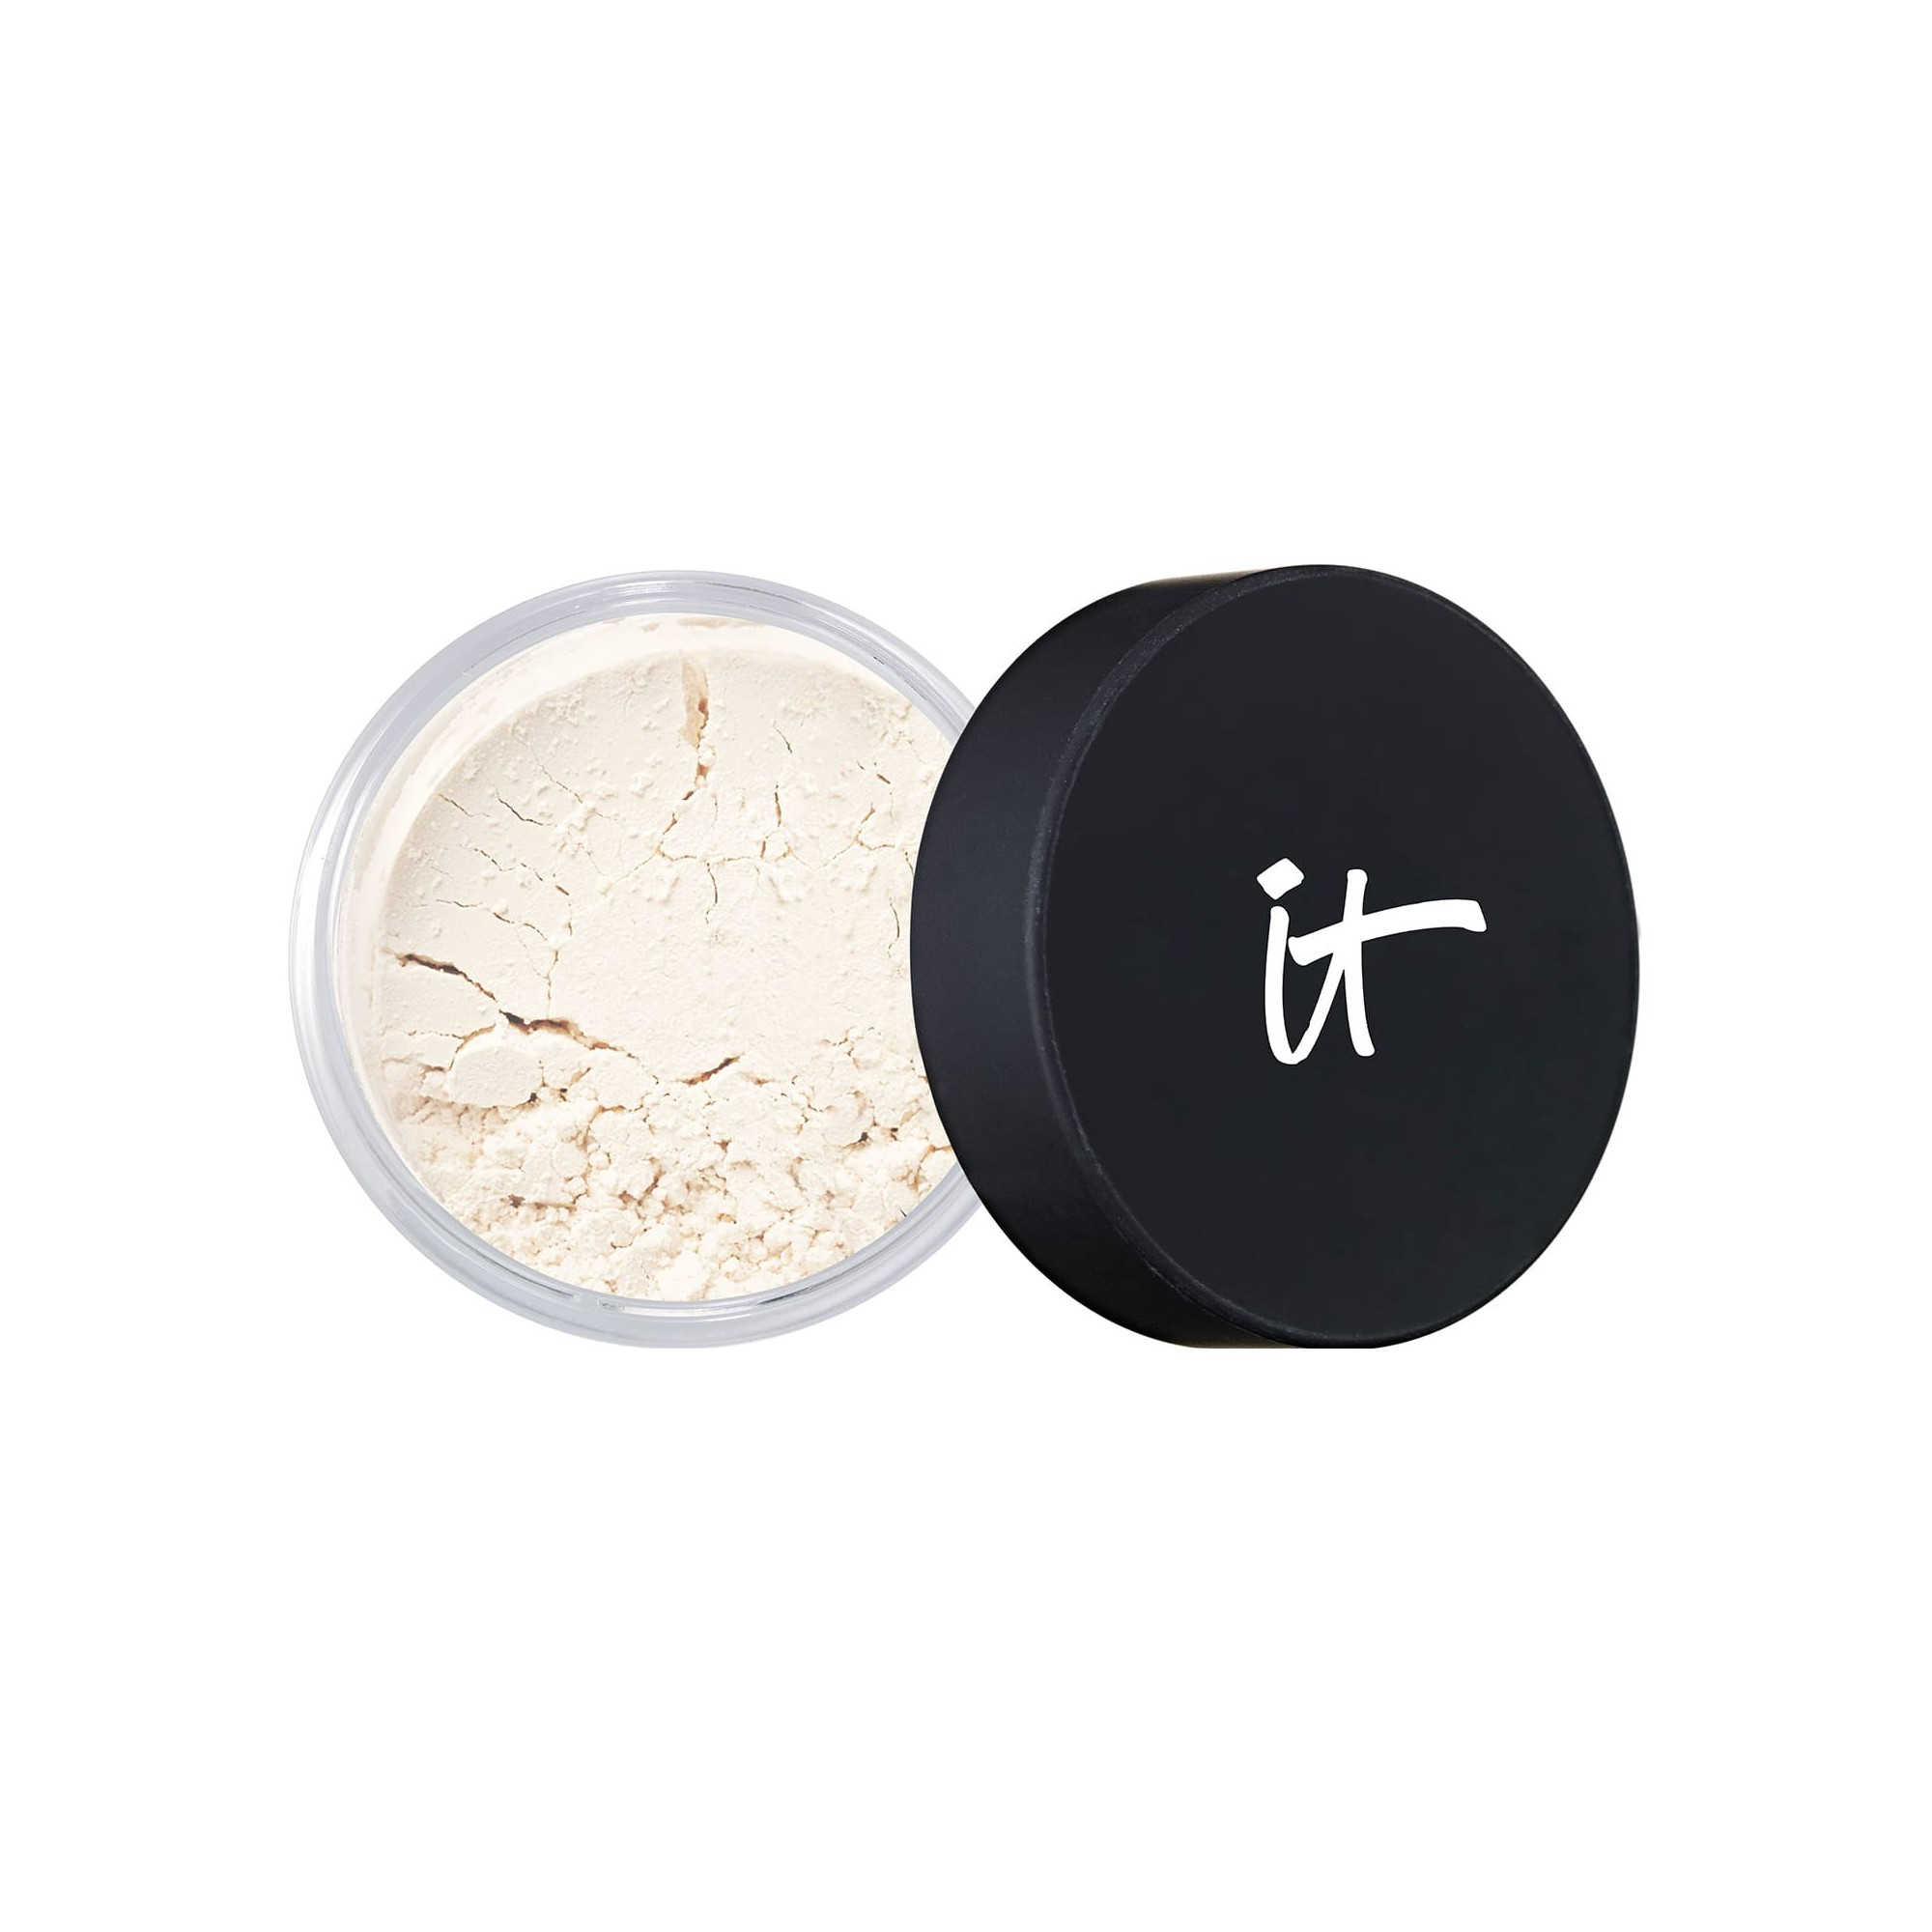 IT Cosmetics Bye Bye Pores Poreless Finish Airbrush Powder